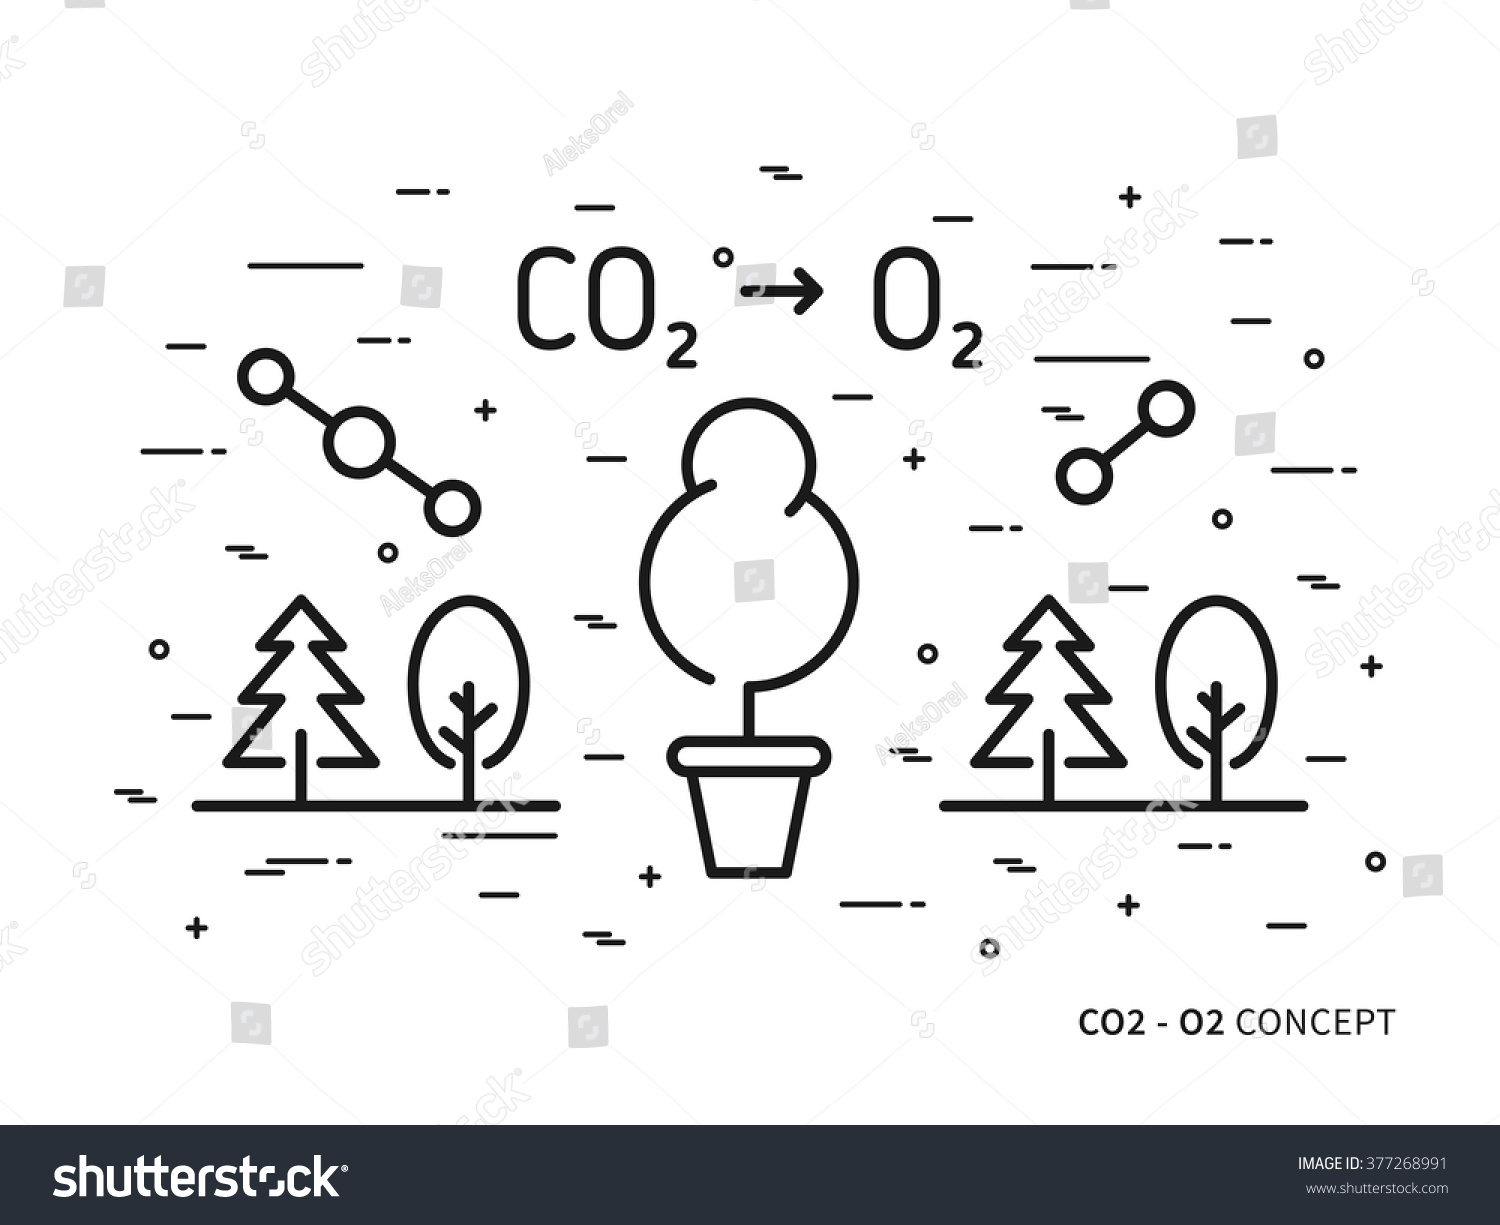 Co 2 Carbon Dioxide O 2 Oxygen Linear Stock Vector Royalty Free